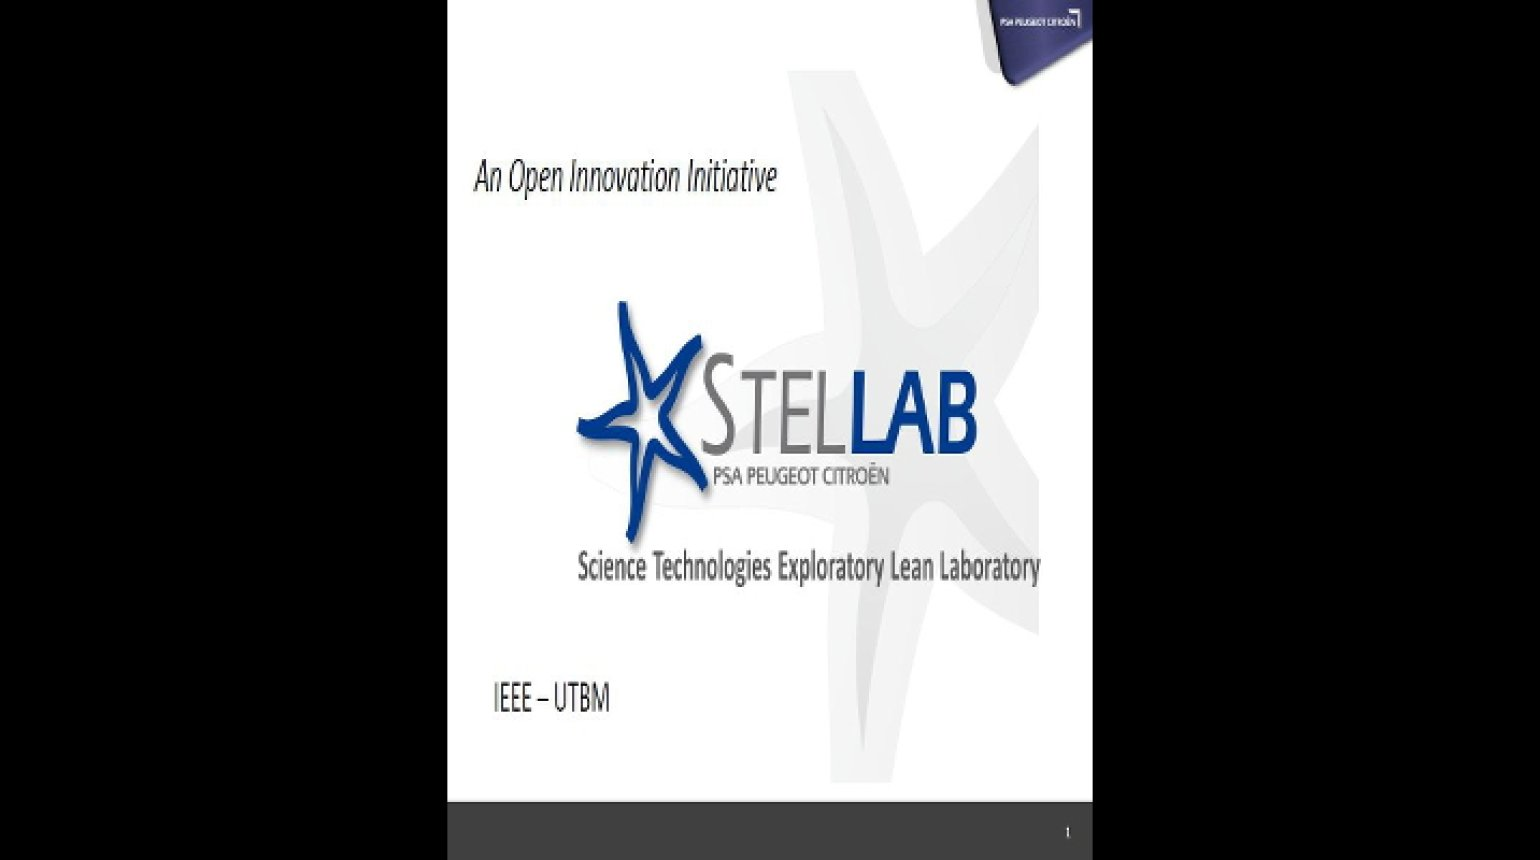 Video - An Open Innovation Initiative